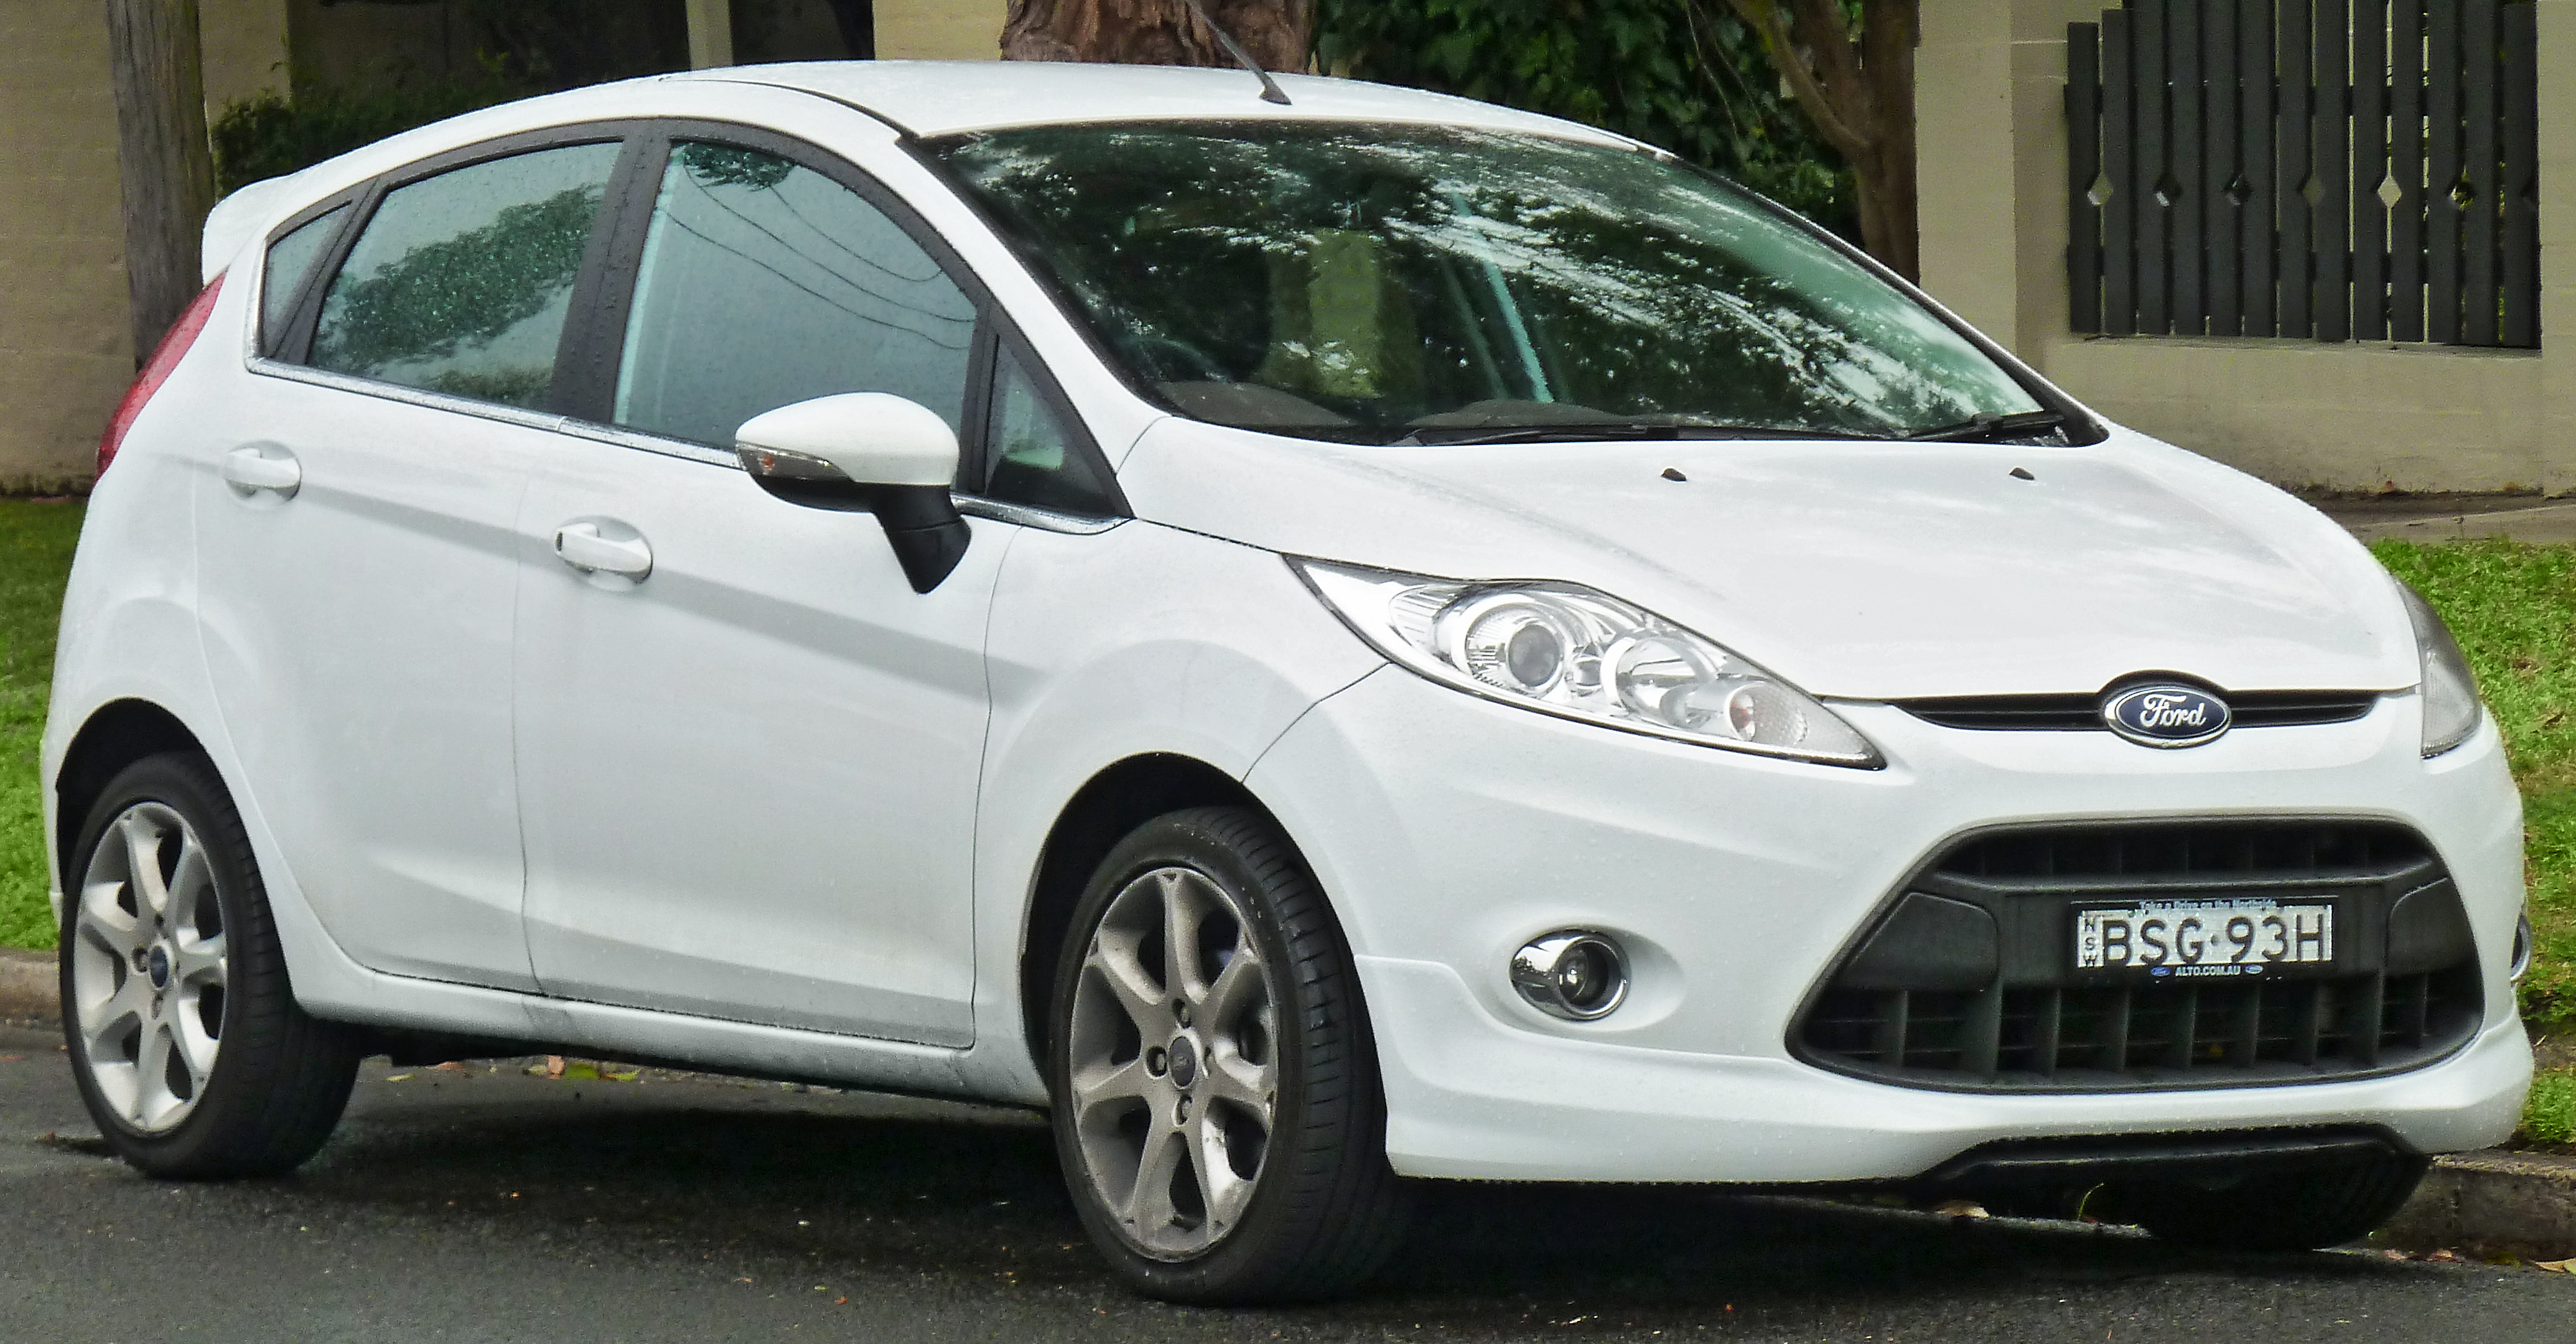 2011 ford fiesta information and photos zombiedrive. Black Bedroom Furniture Sets. Home Design Ideas